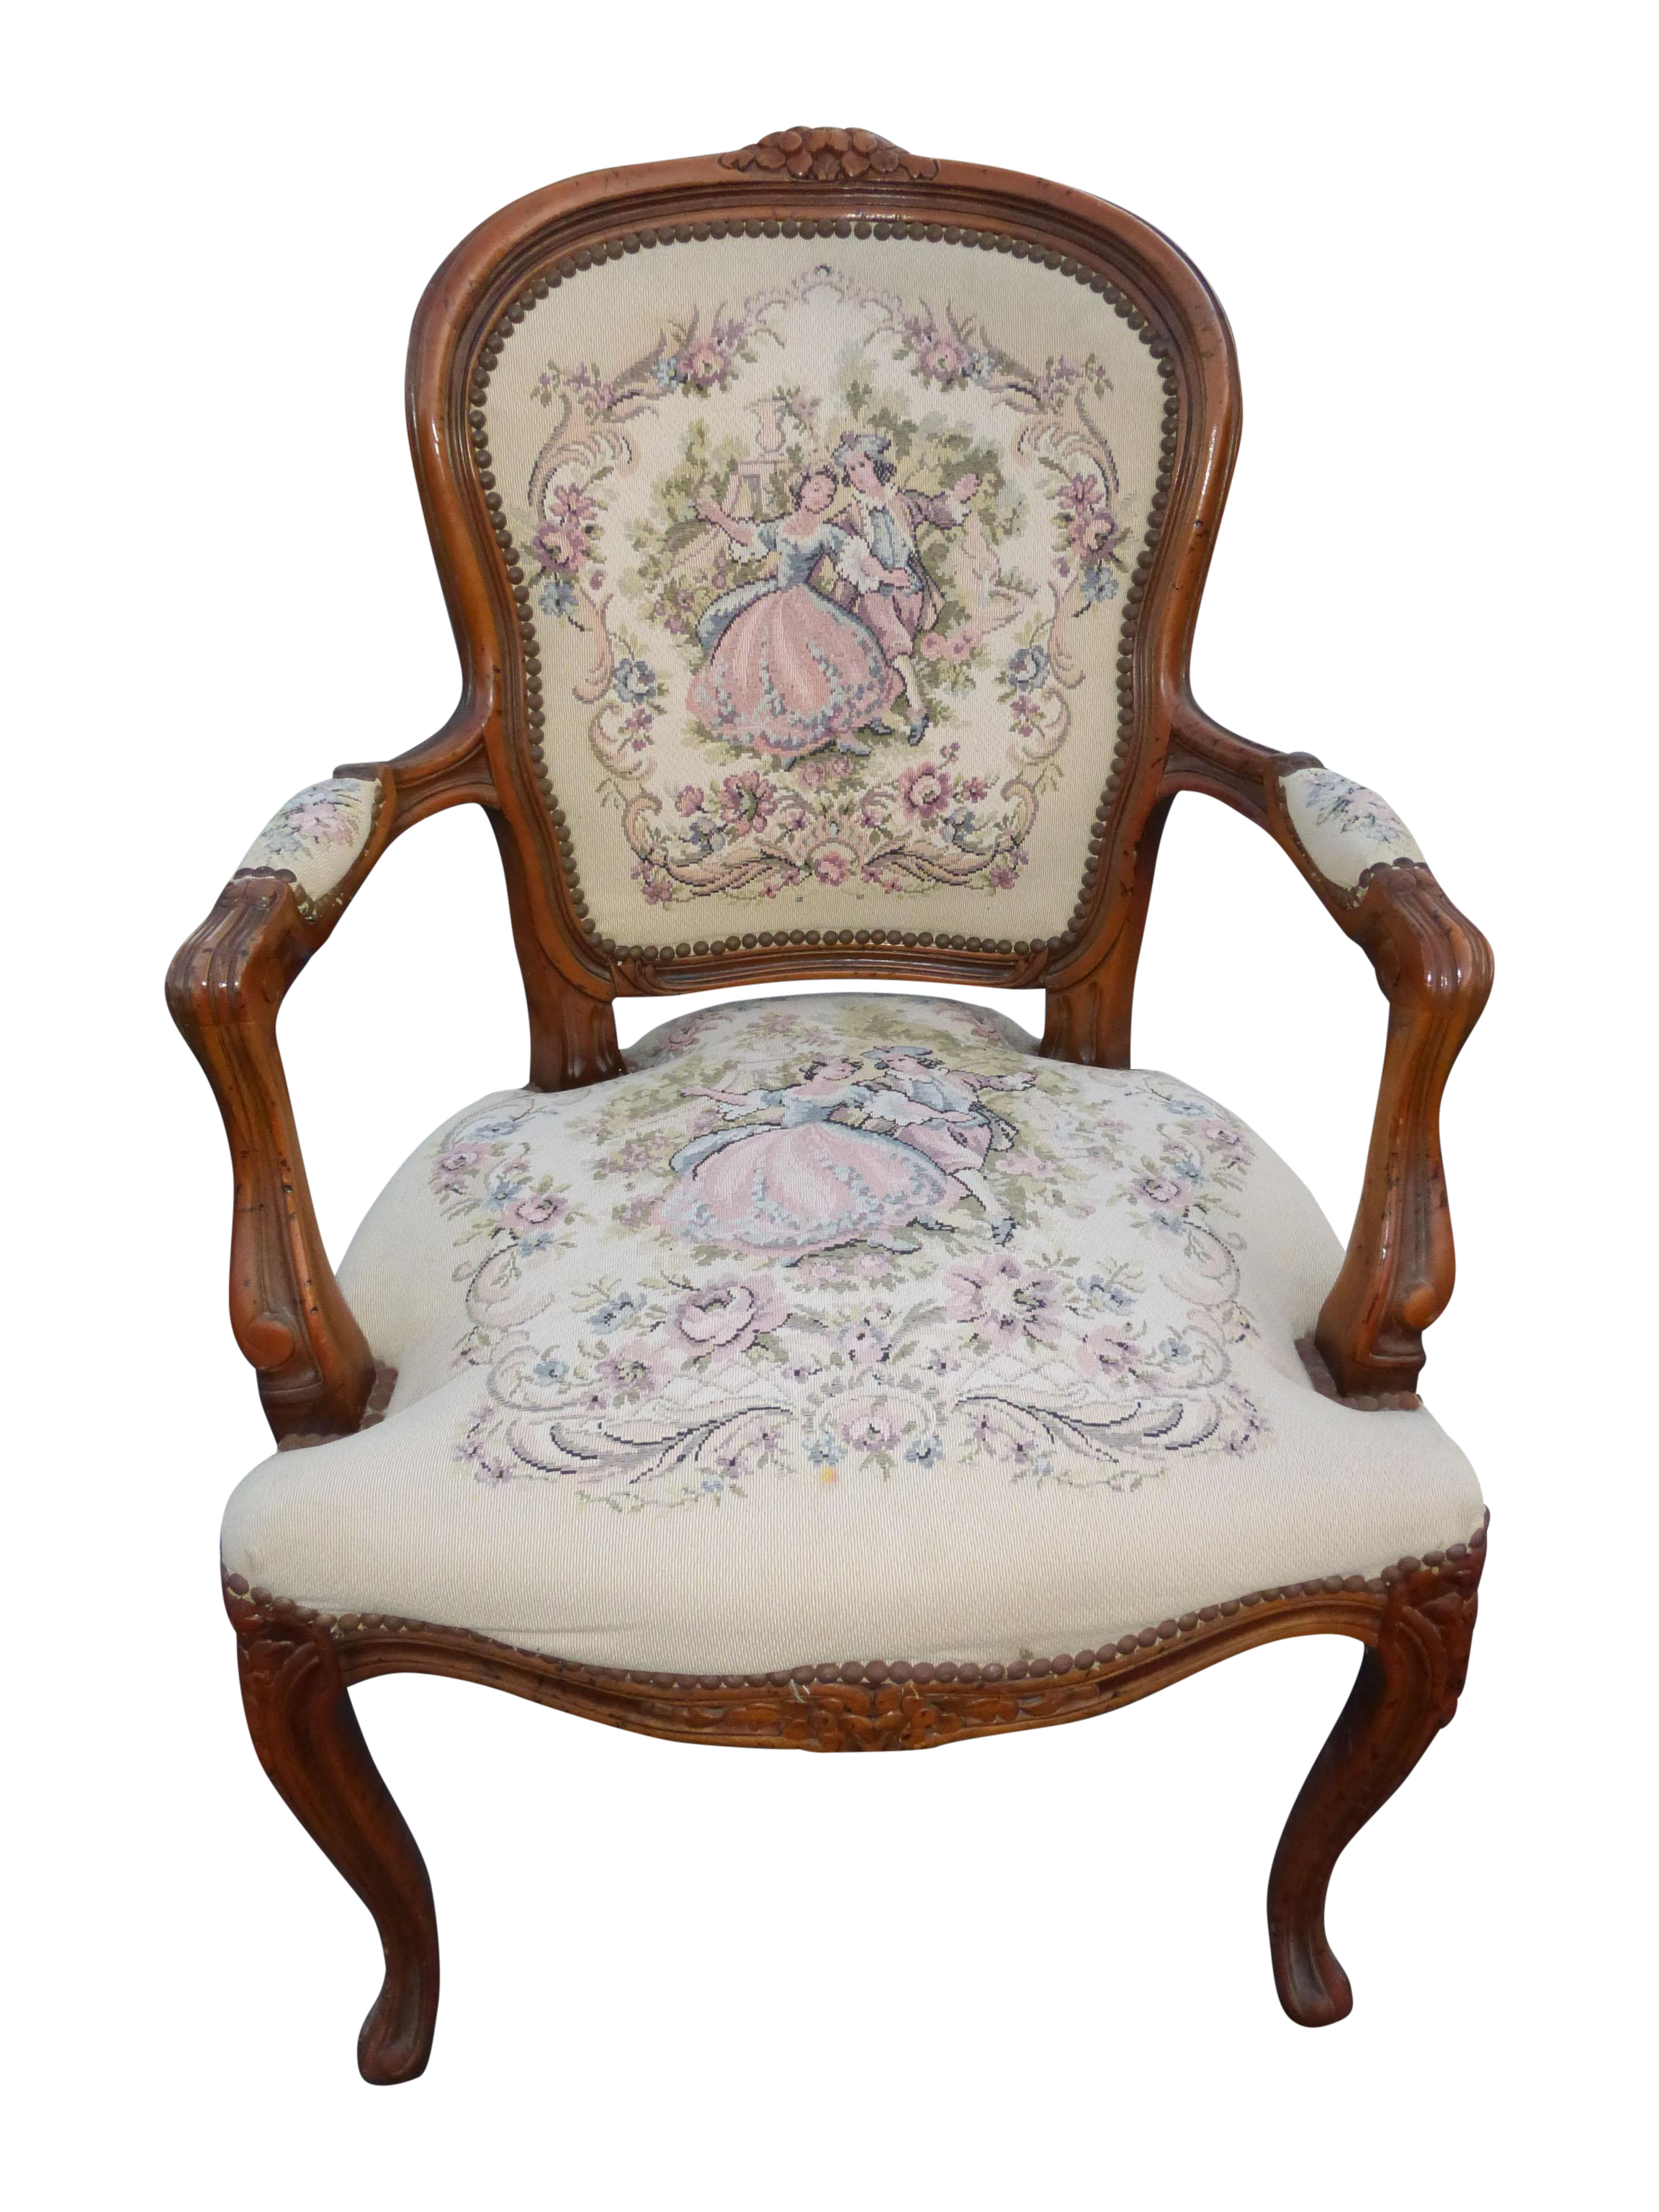 French Provincial Tapestry Ornate Carved Arm Chair Chairish